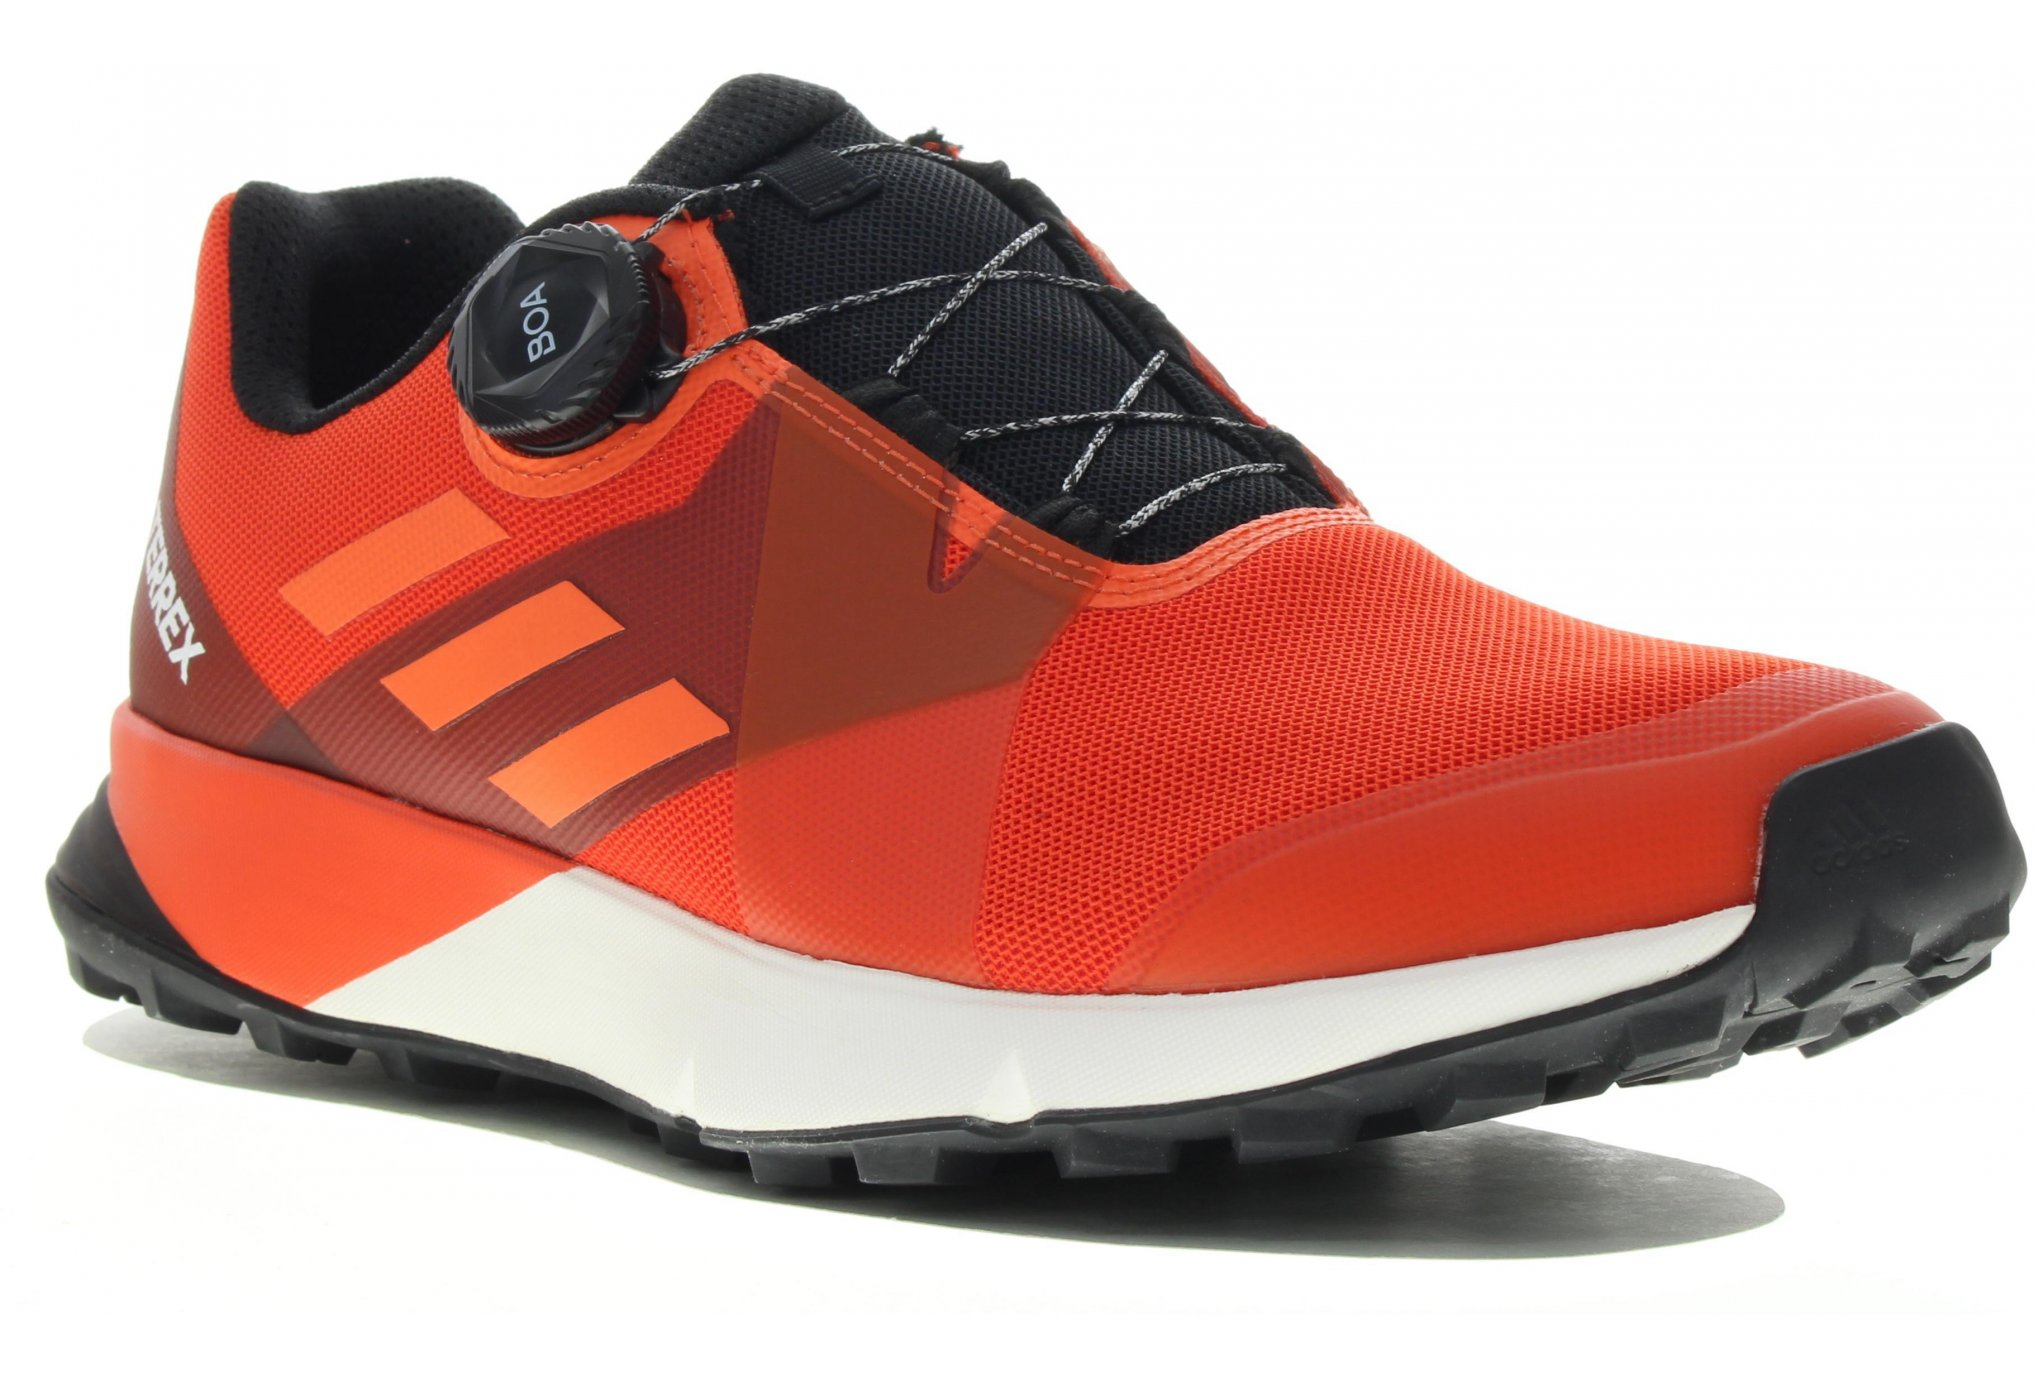 adidas Terrex Two Boa déstockage running